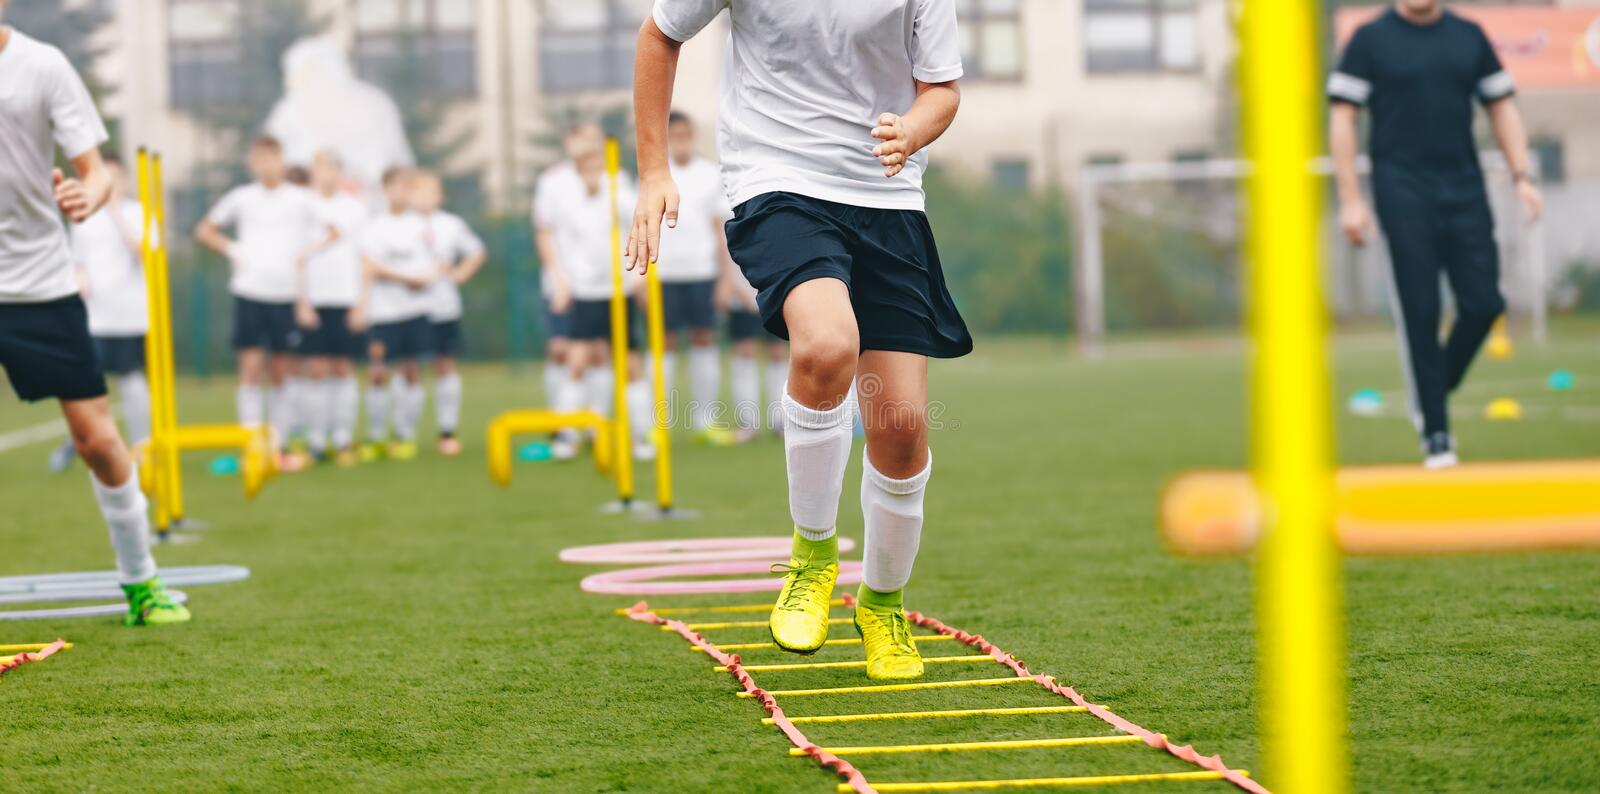 Boy Soccer Player In Training. Young Soccer Players at Practice Session. Boys Running Youth Agility Ladder Drills. Soccer Ladder Exercises stock images